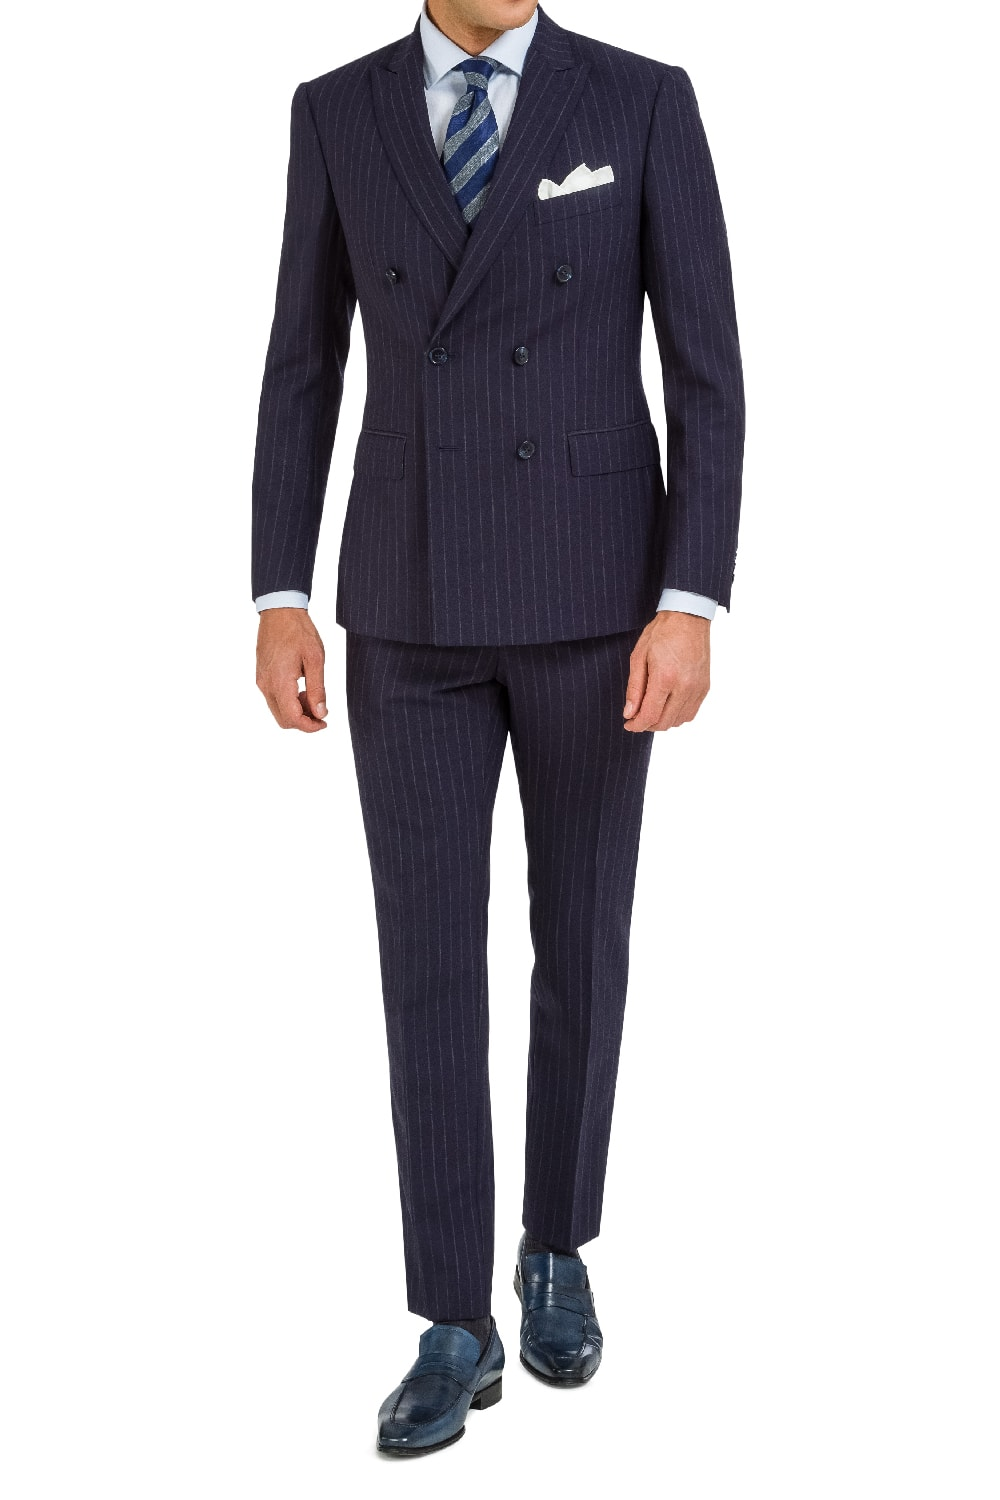 Double-breasted pinstripe suit